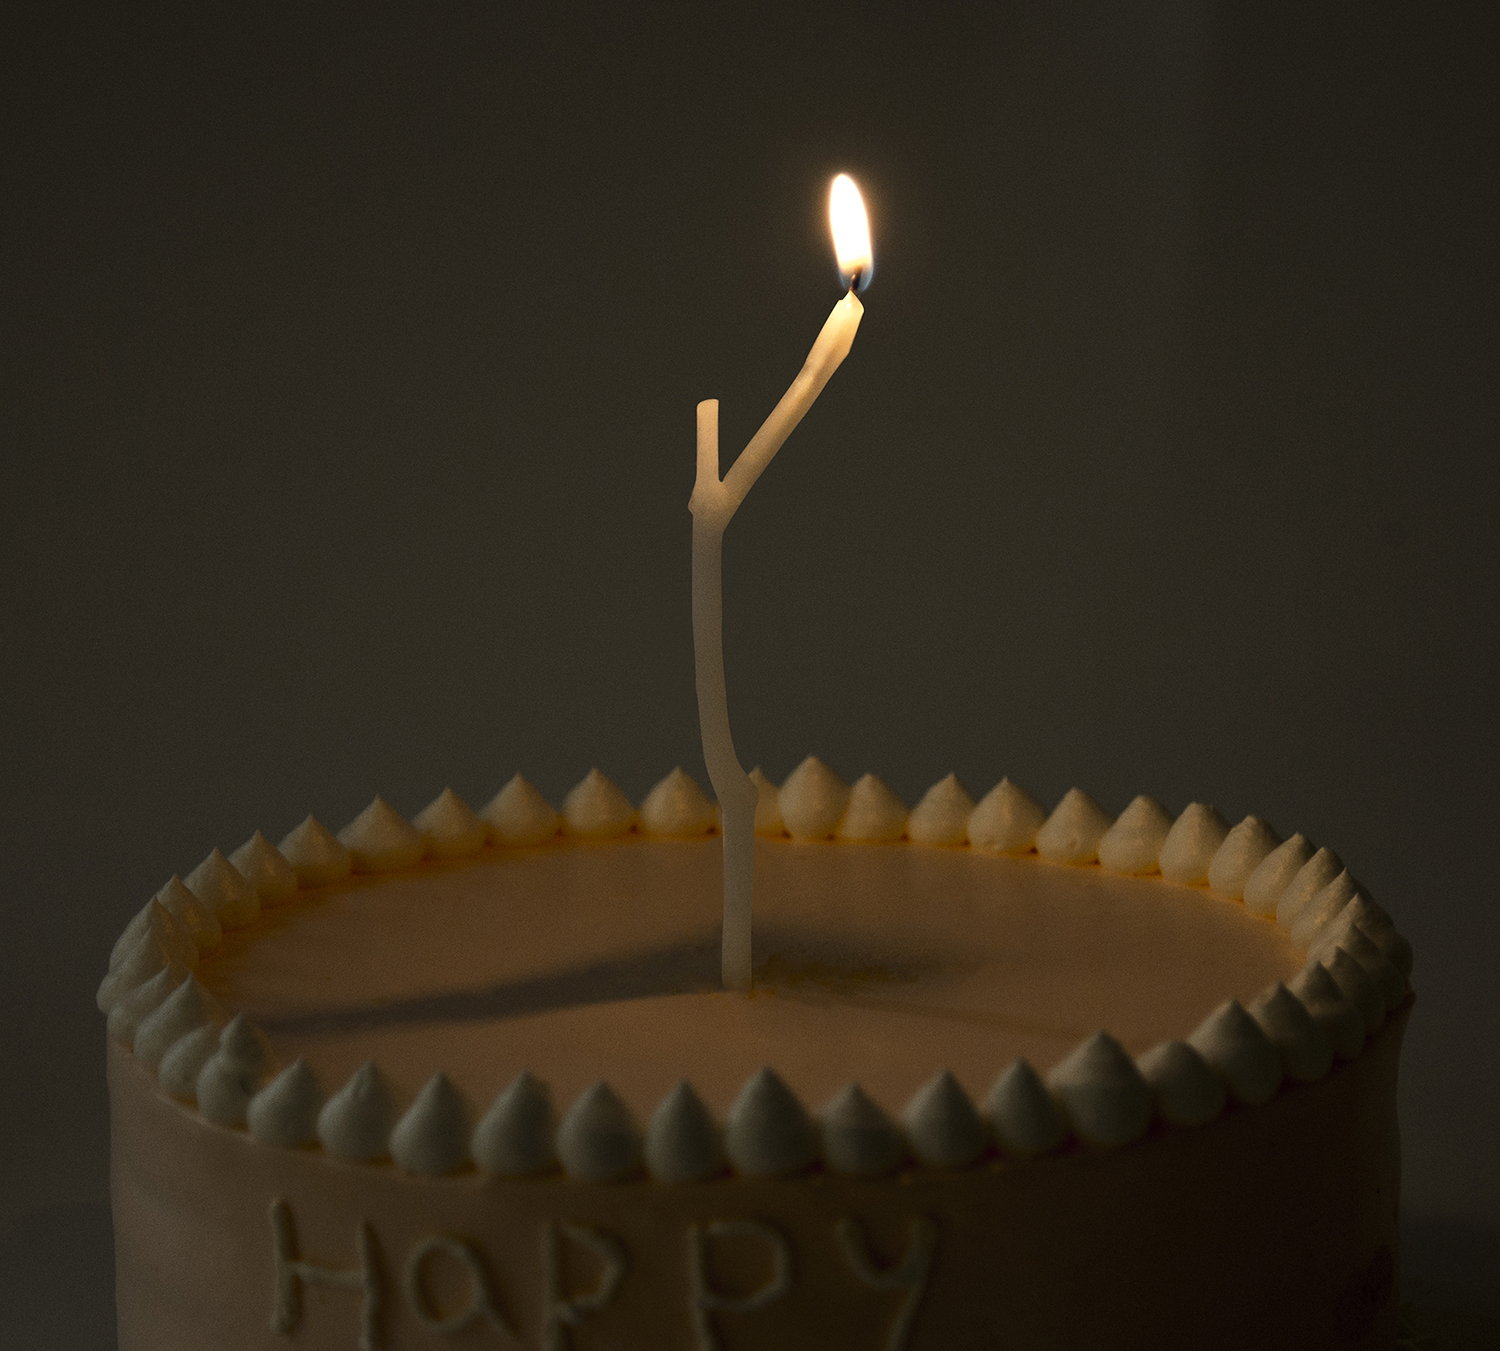 Wish in the Wind Birthday Candle by Ling Ouyang